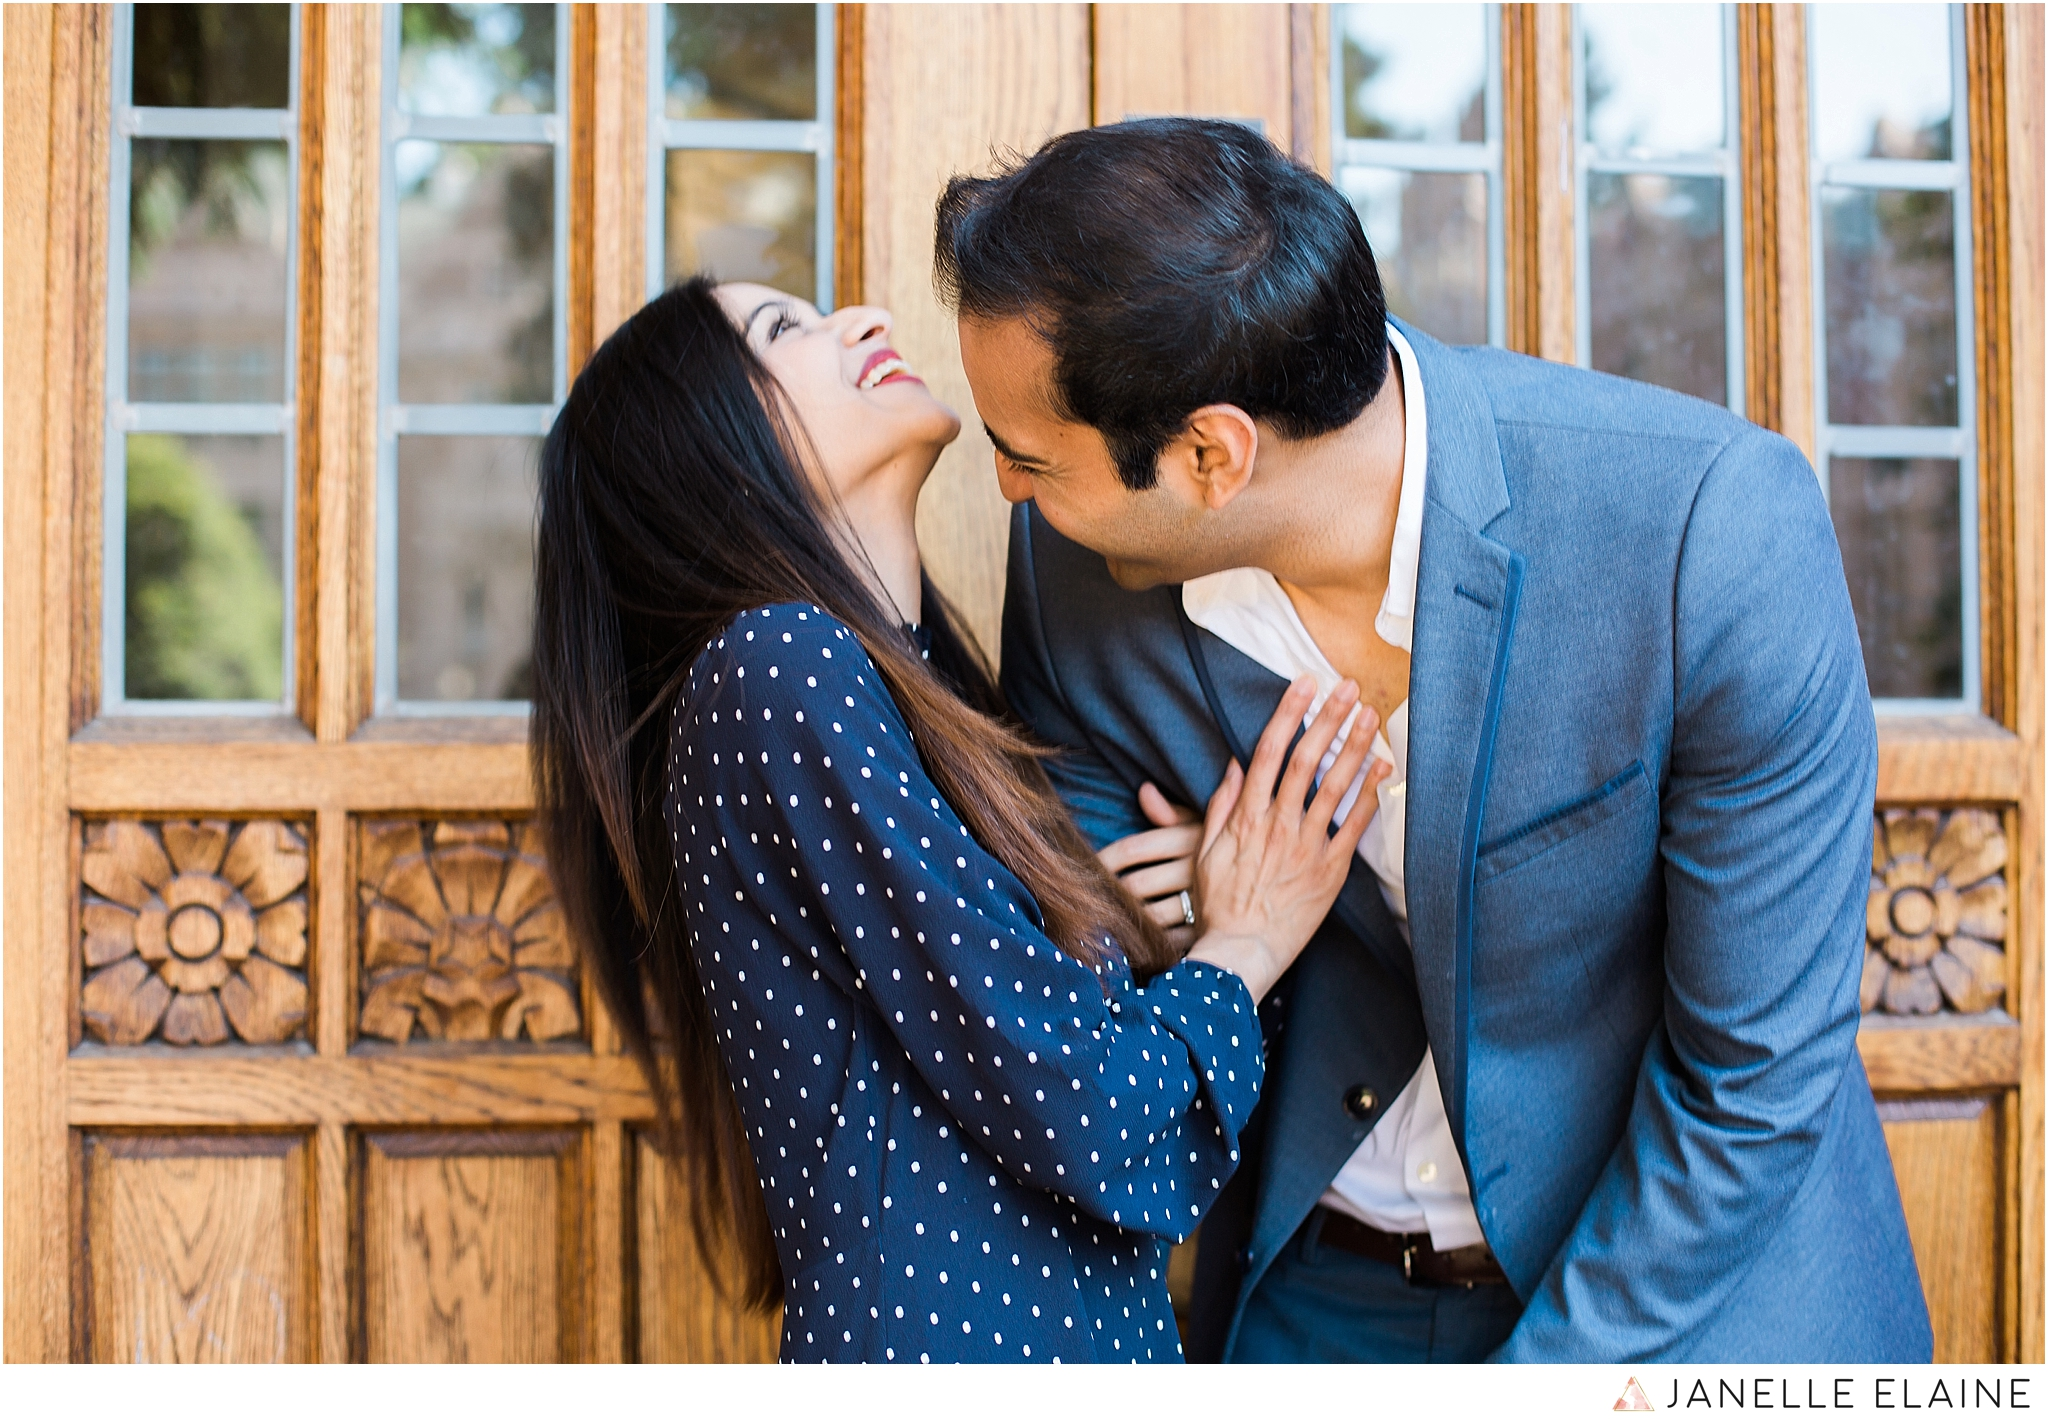 janelle elaine photography-zain and umema-seattle-uw-red square-engagement-photographer-42.jpg